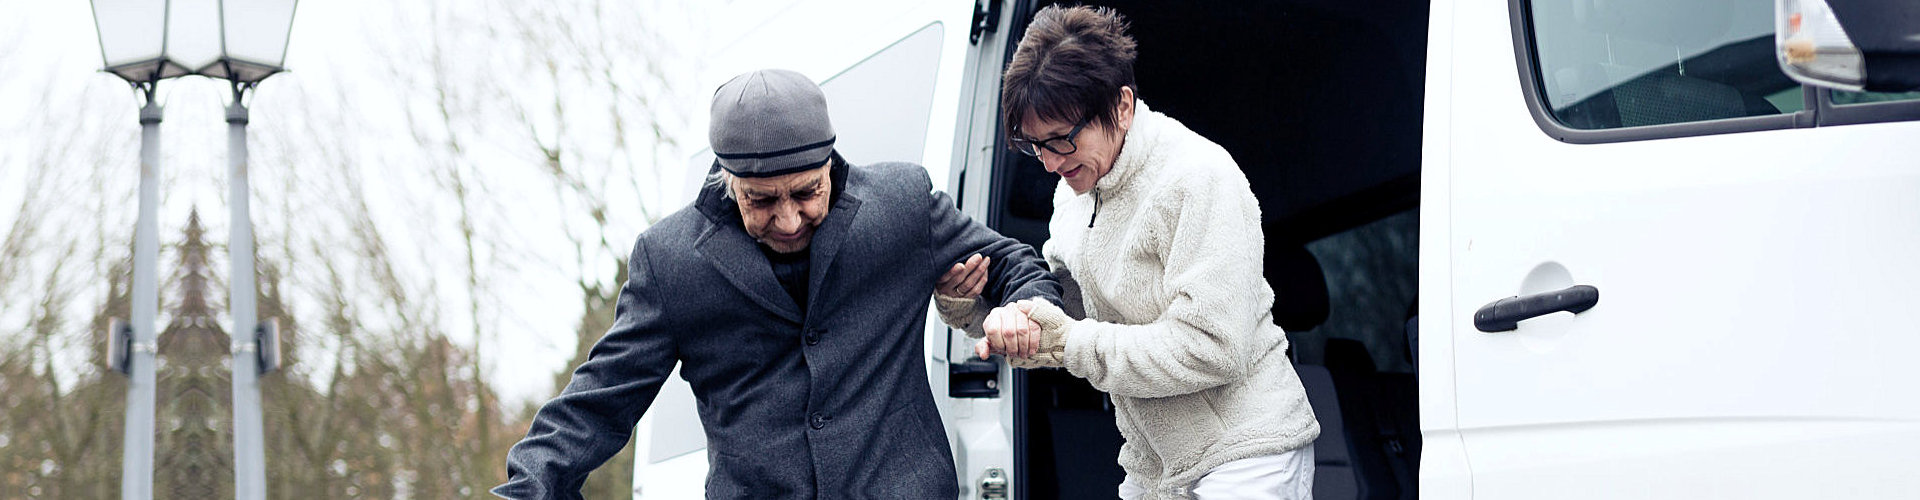 caregiver helping senior man to exit the van